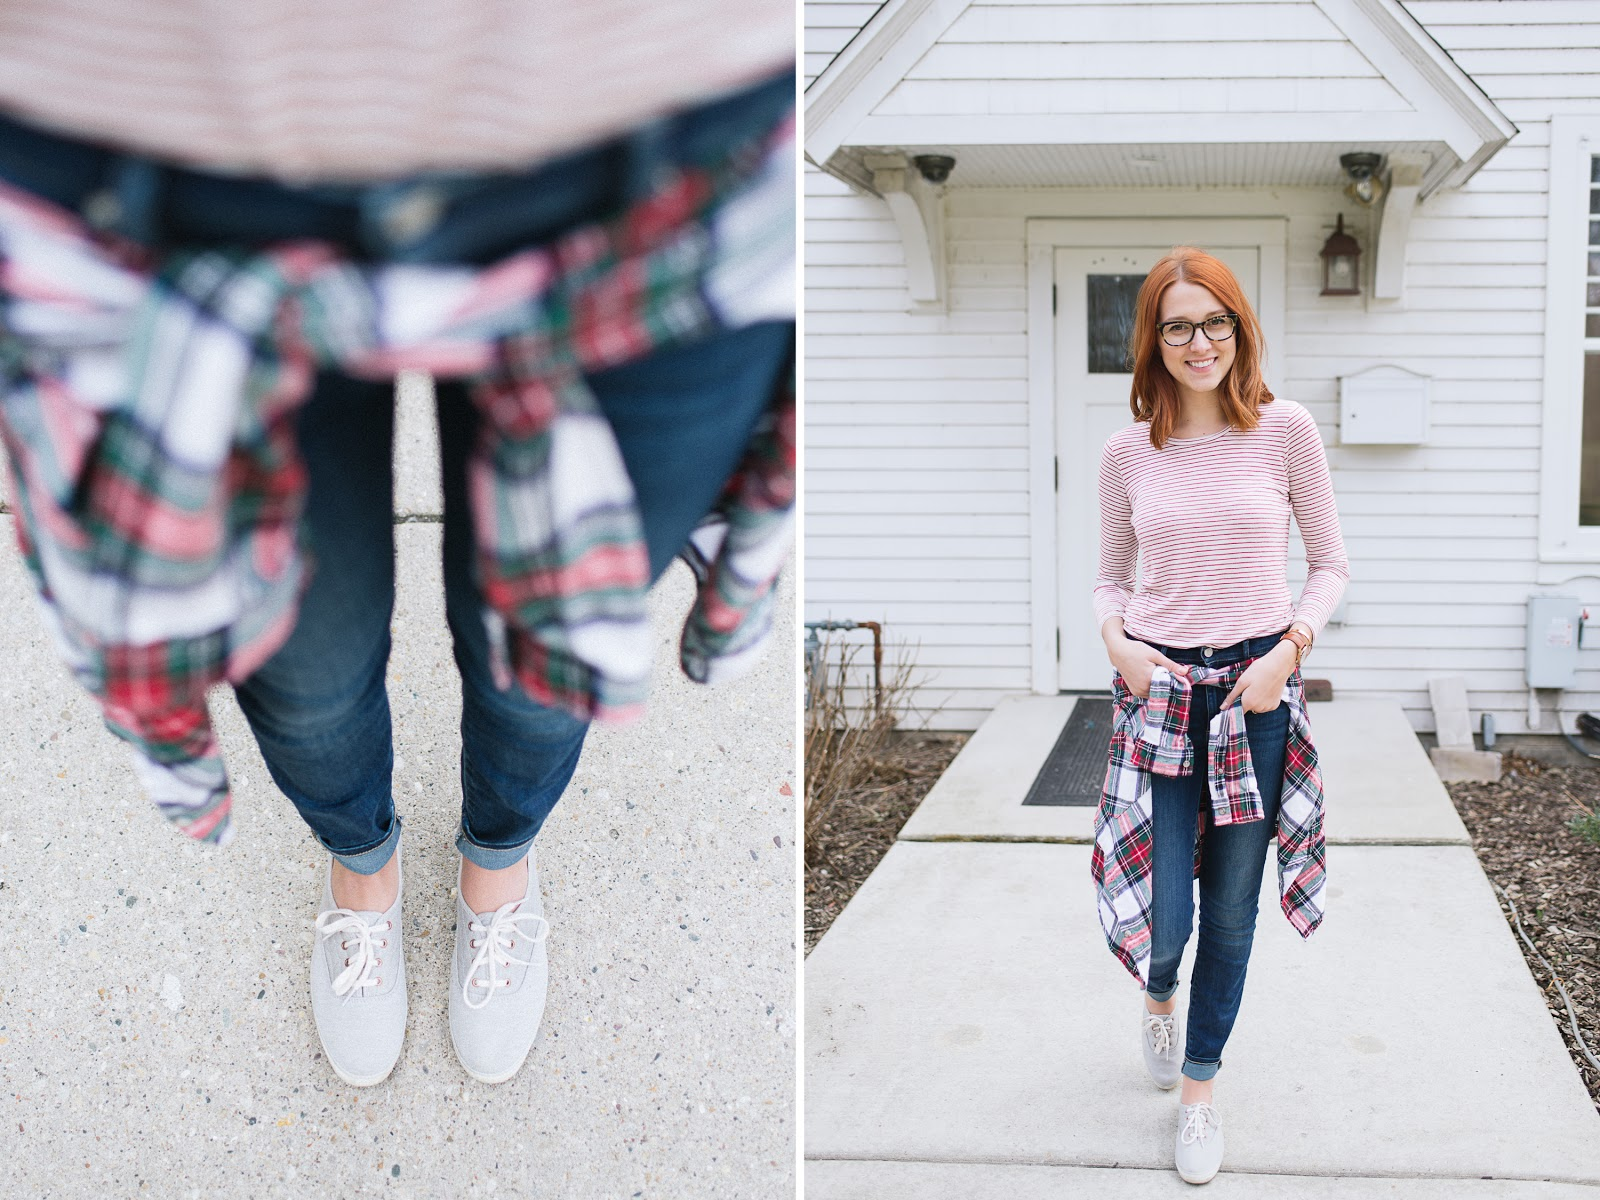 Beautyosuaurs Lex-Alex Good-Style Blog-Madewell Anthem-Gap True Resolution Skinny Jeans-Keds-Urban Outfitters Flannel-Nixon Rose Gold Kensington-Spring-Gus-1.jpg